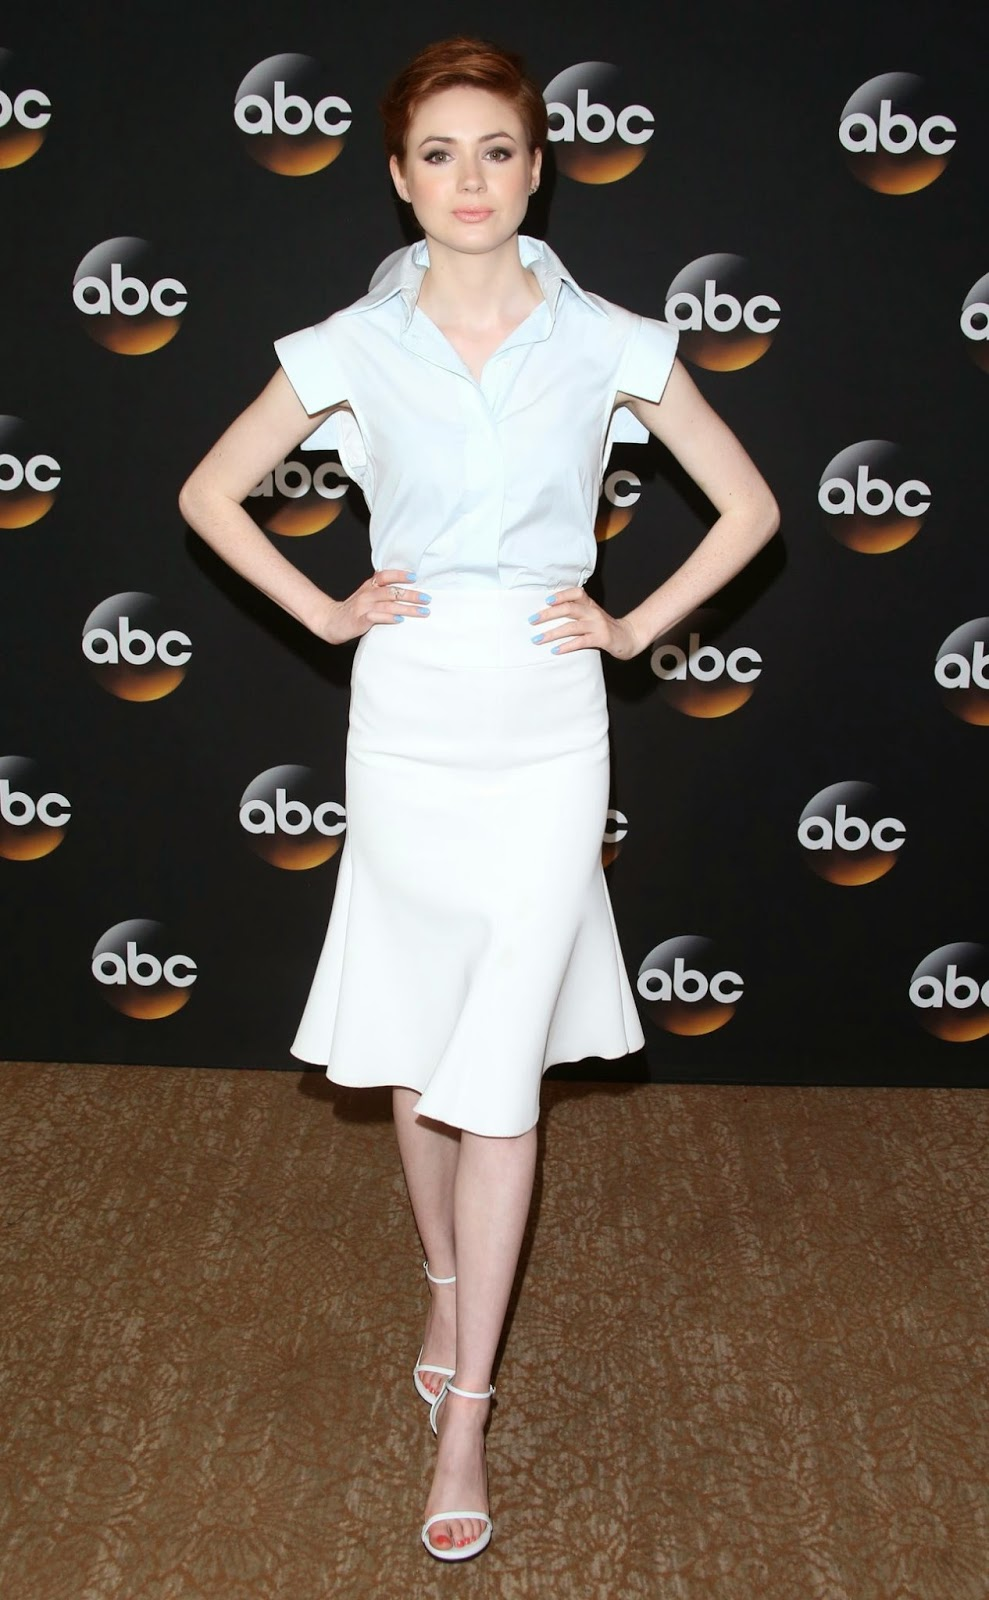 Karen Gillan in an Ellery high-waisted skirt at the 2014 Television Critics Association Summer Press Tour